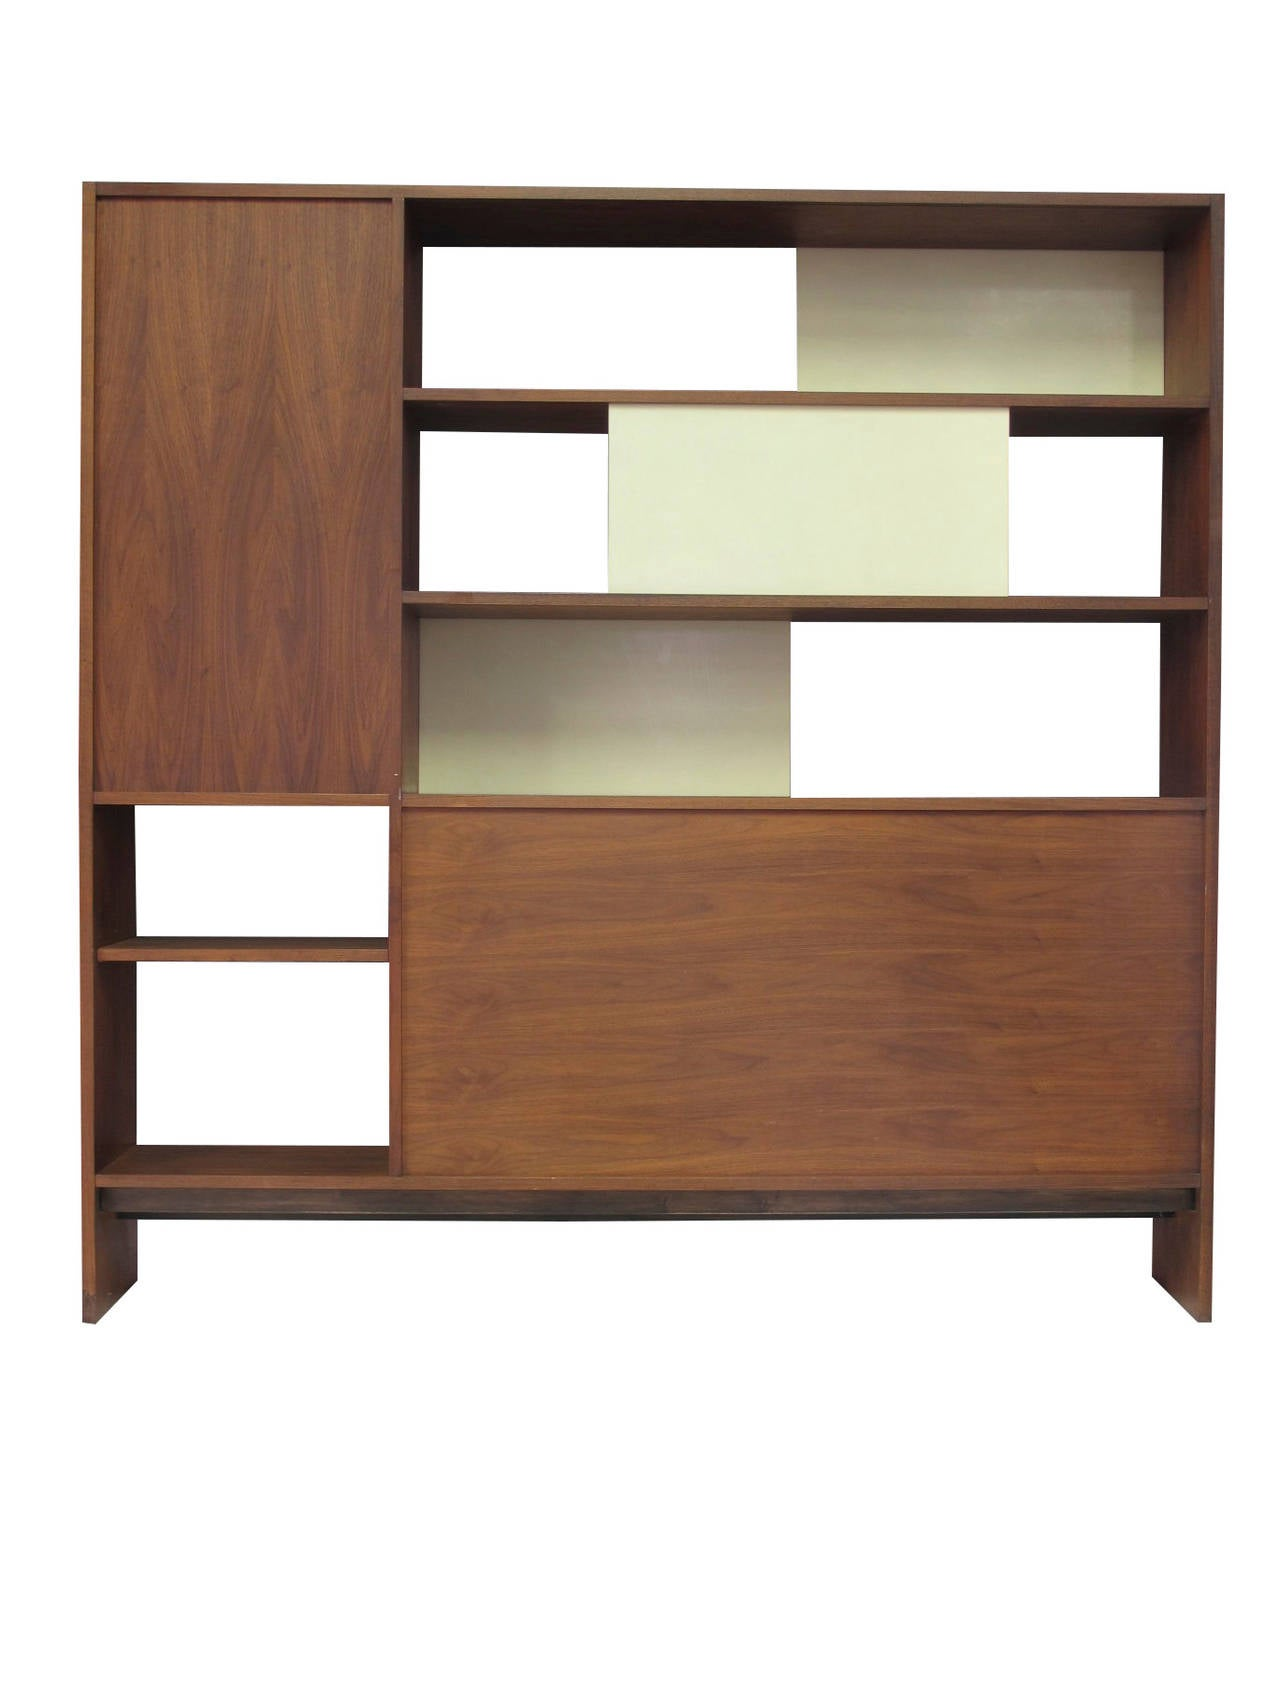 #885C42 Walnut Room Divider Bookcase At 1stdibs with 1280x1706 px of Recommended Open Shelf Bookcase Room Divider 17061280 save image @ avoidforclosure.info